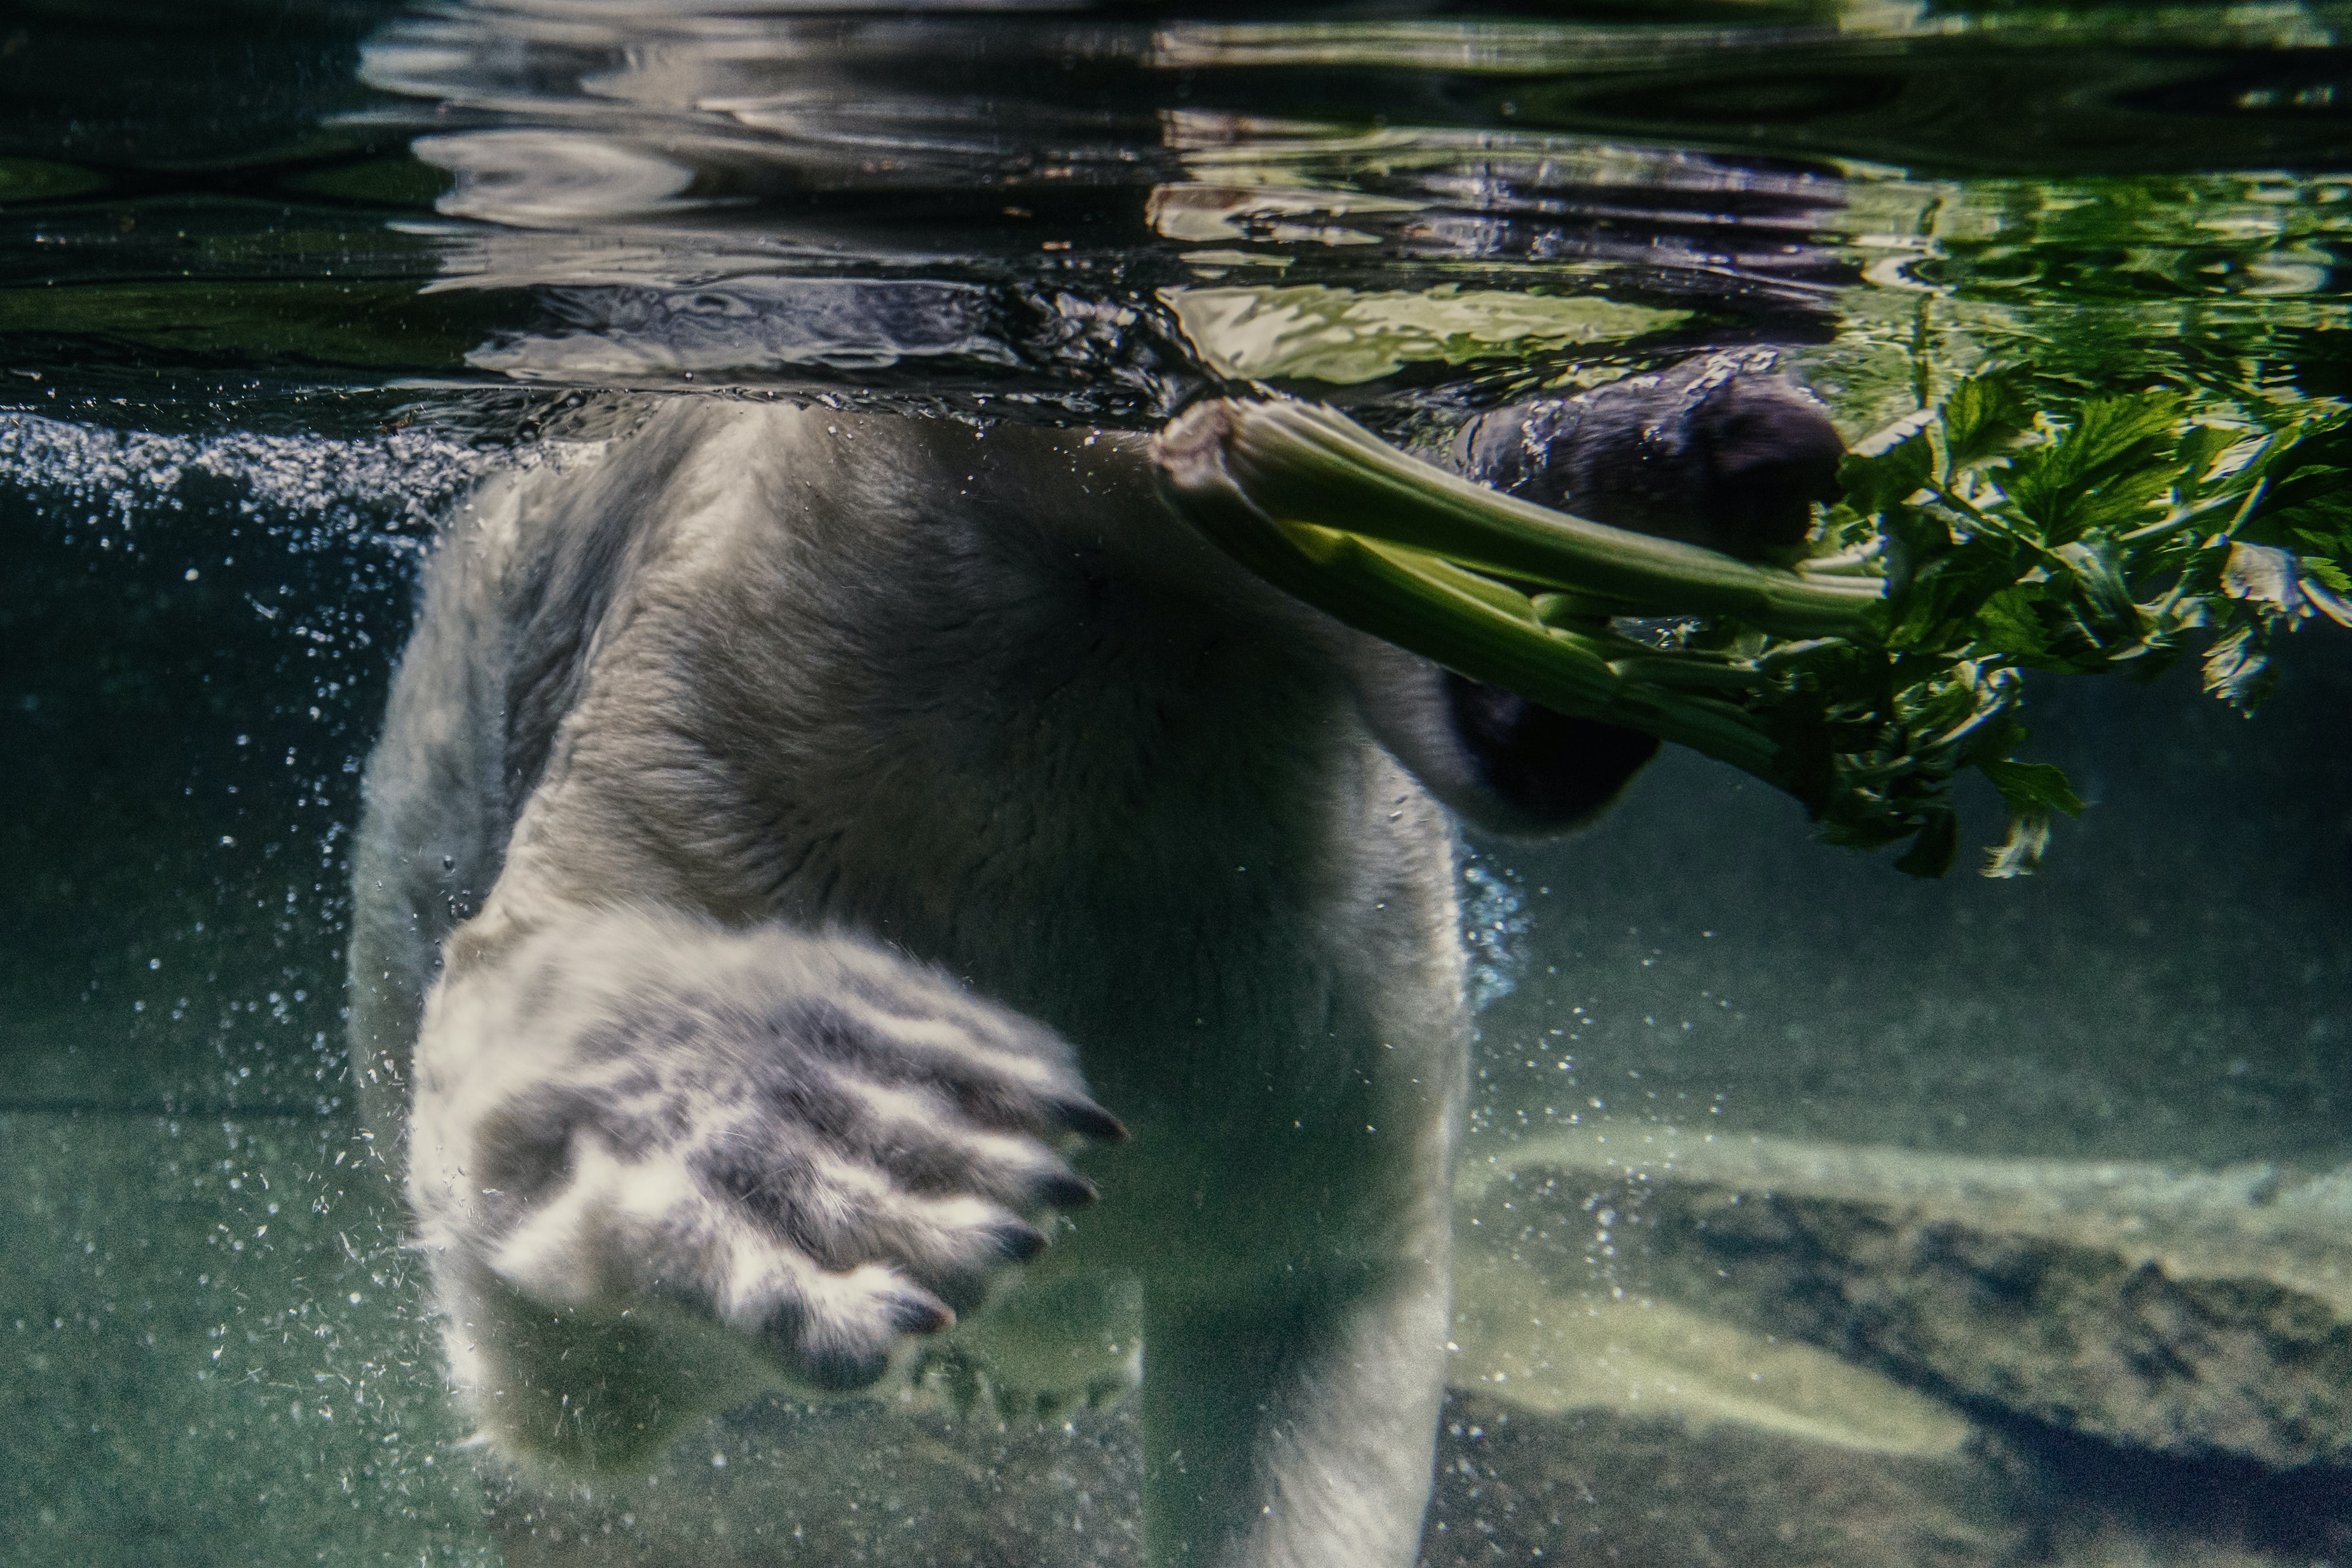 dog eating plant on water